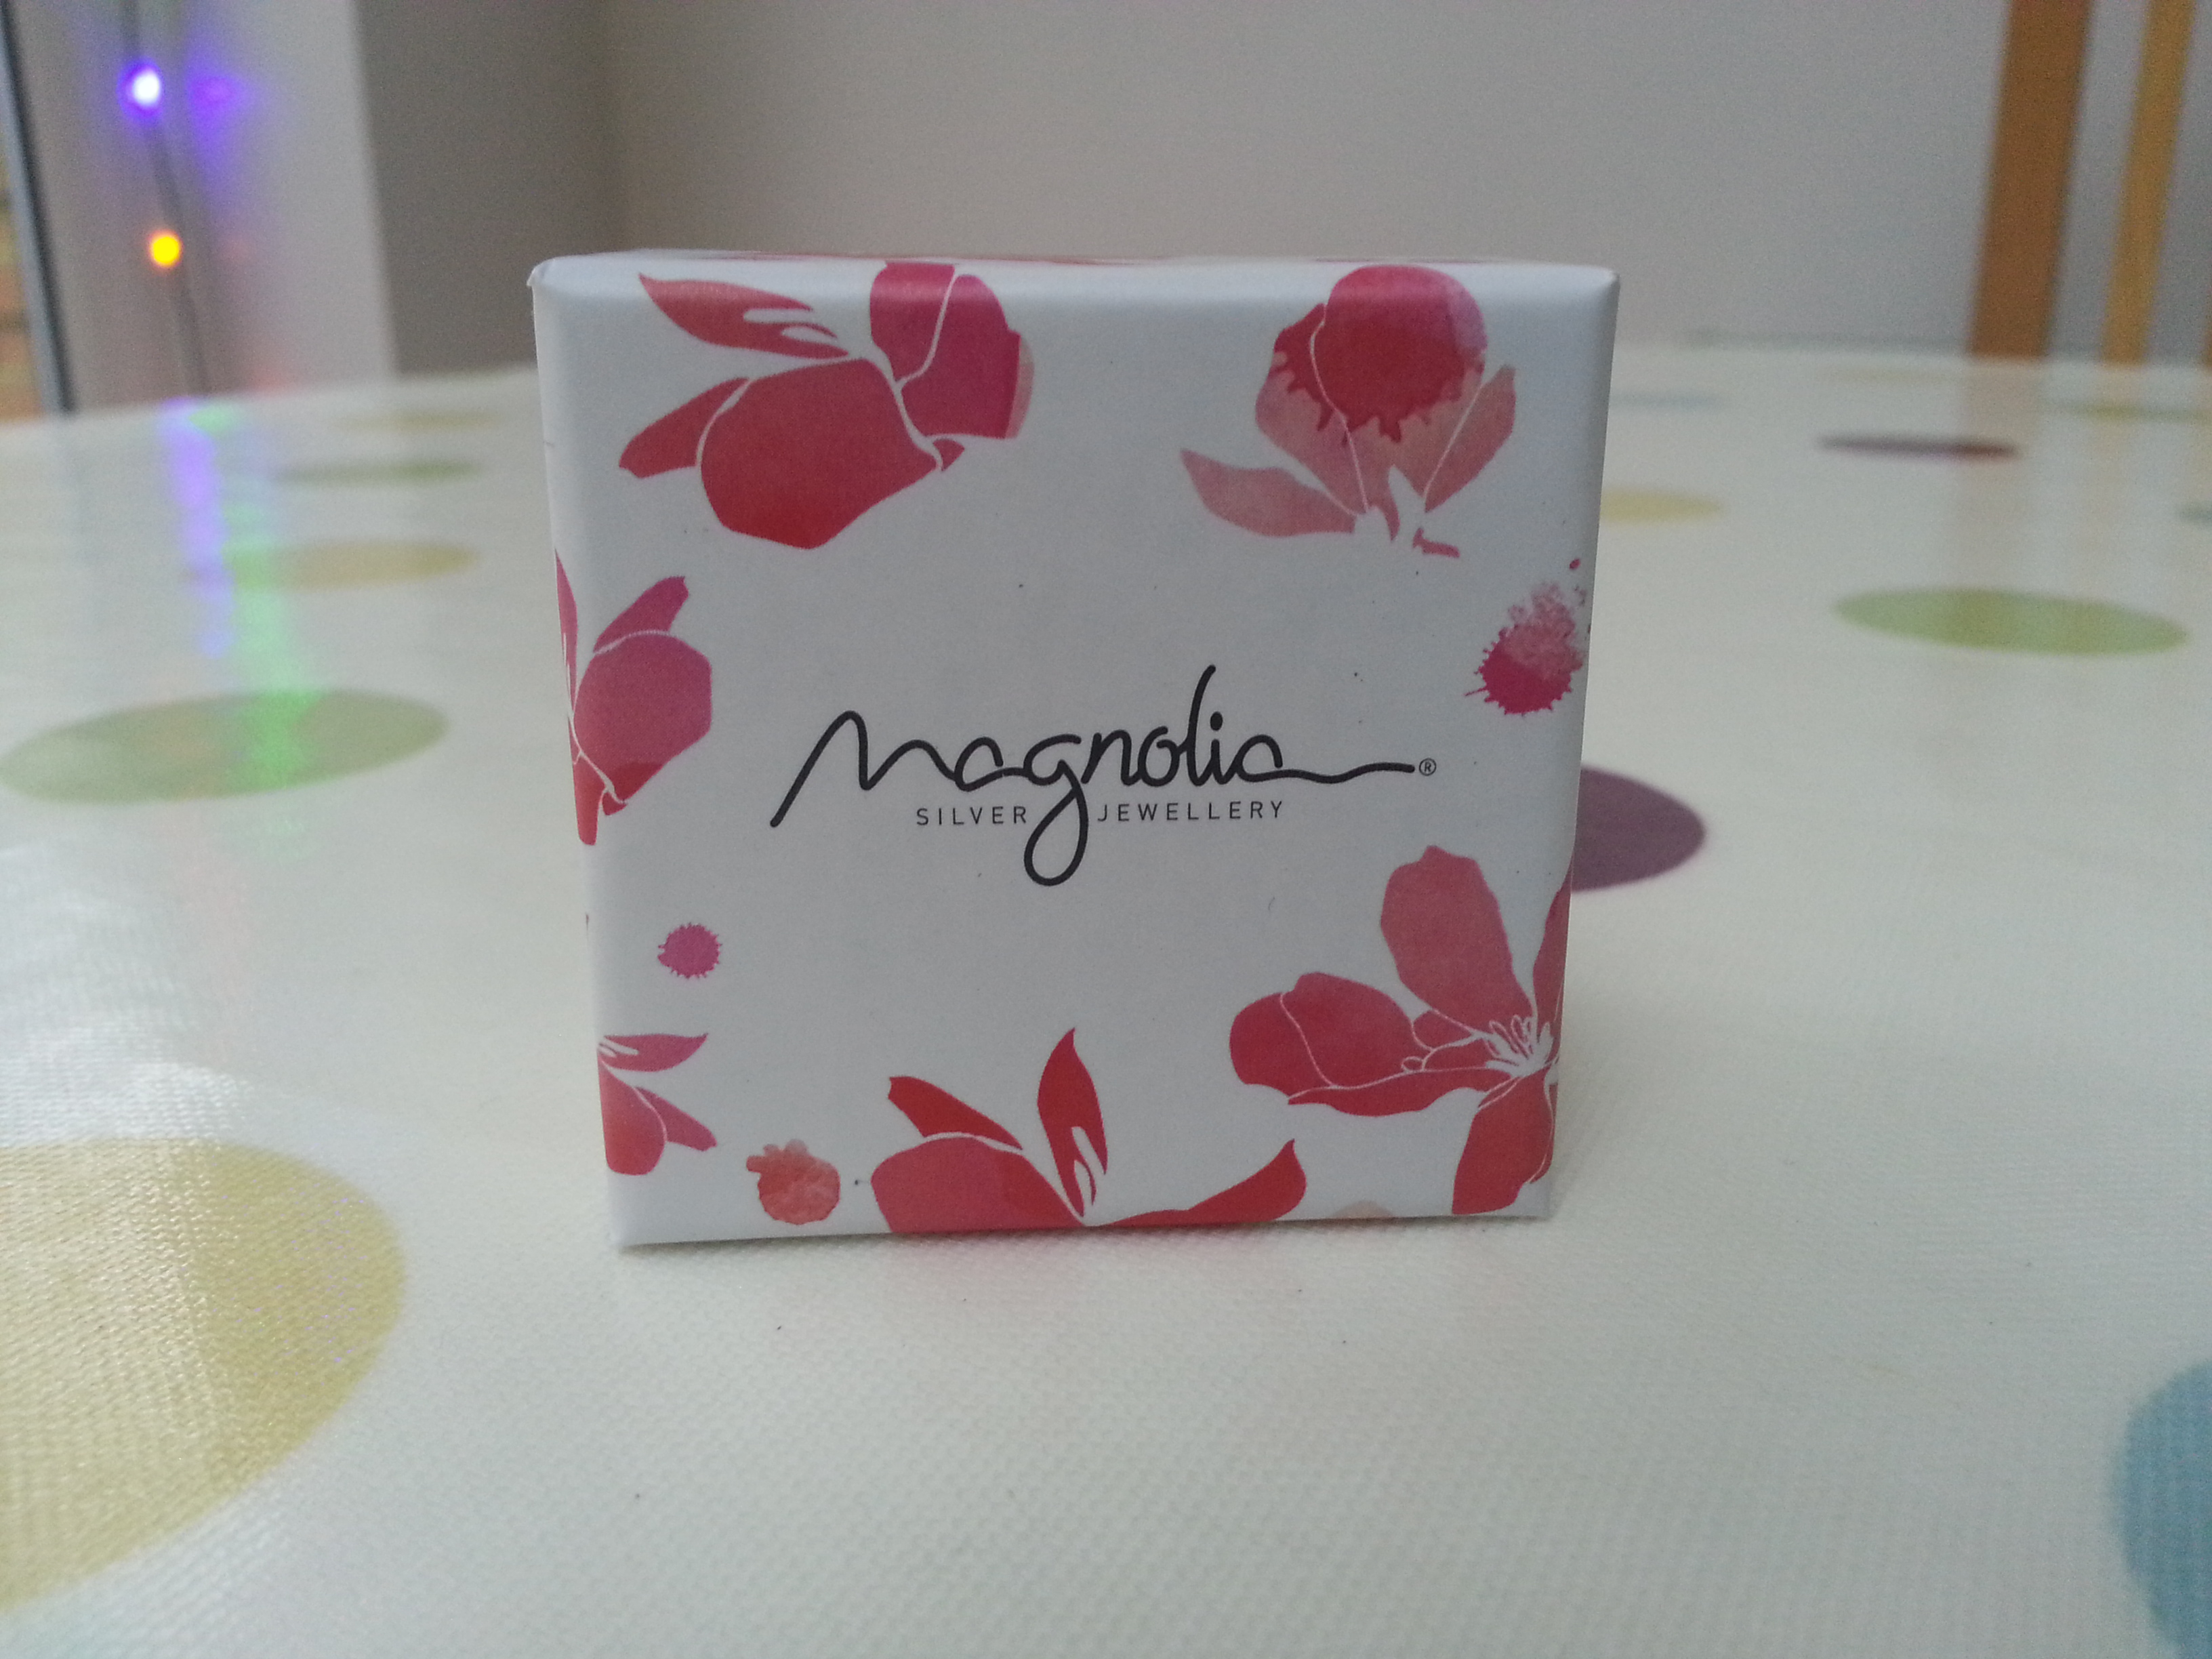 Pretty Packaging Design – Magnolia Silver Jewellery